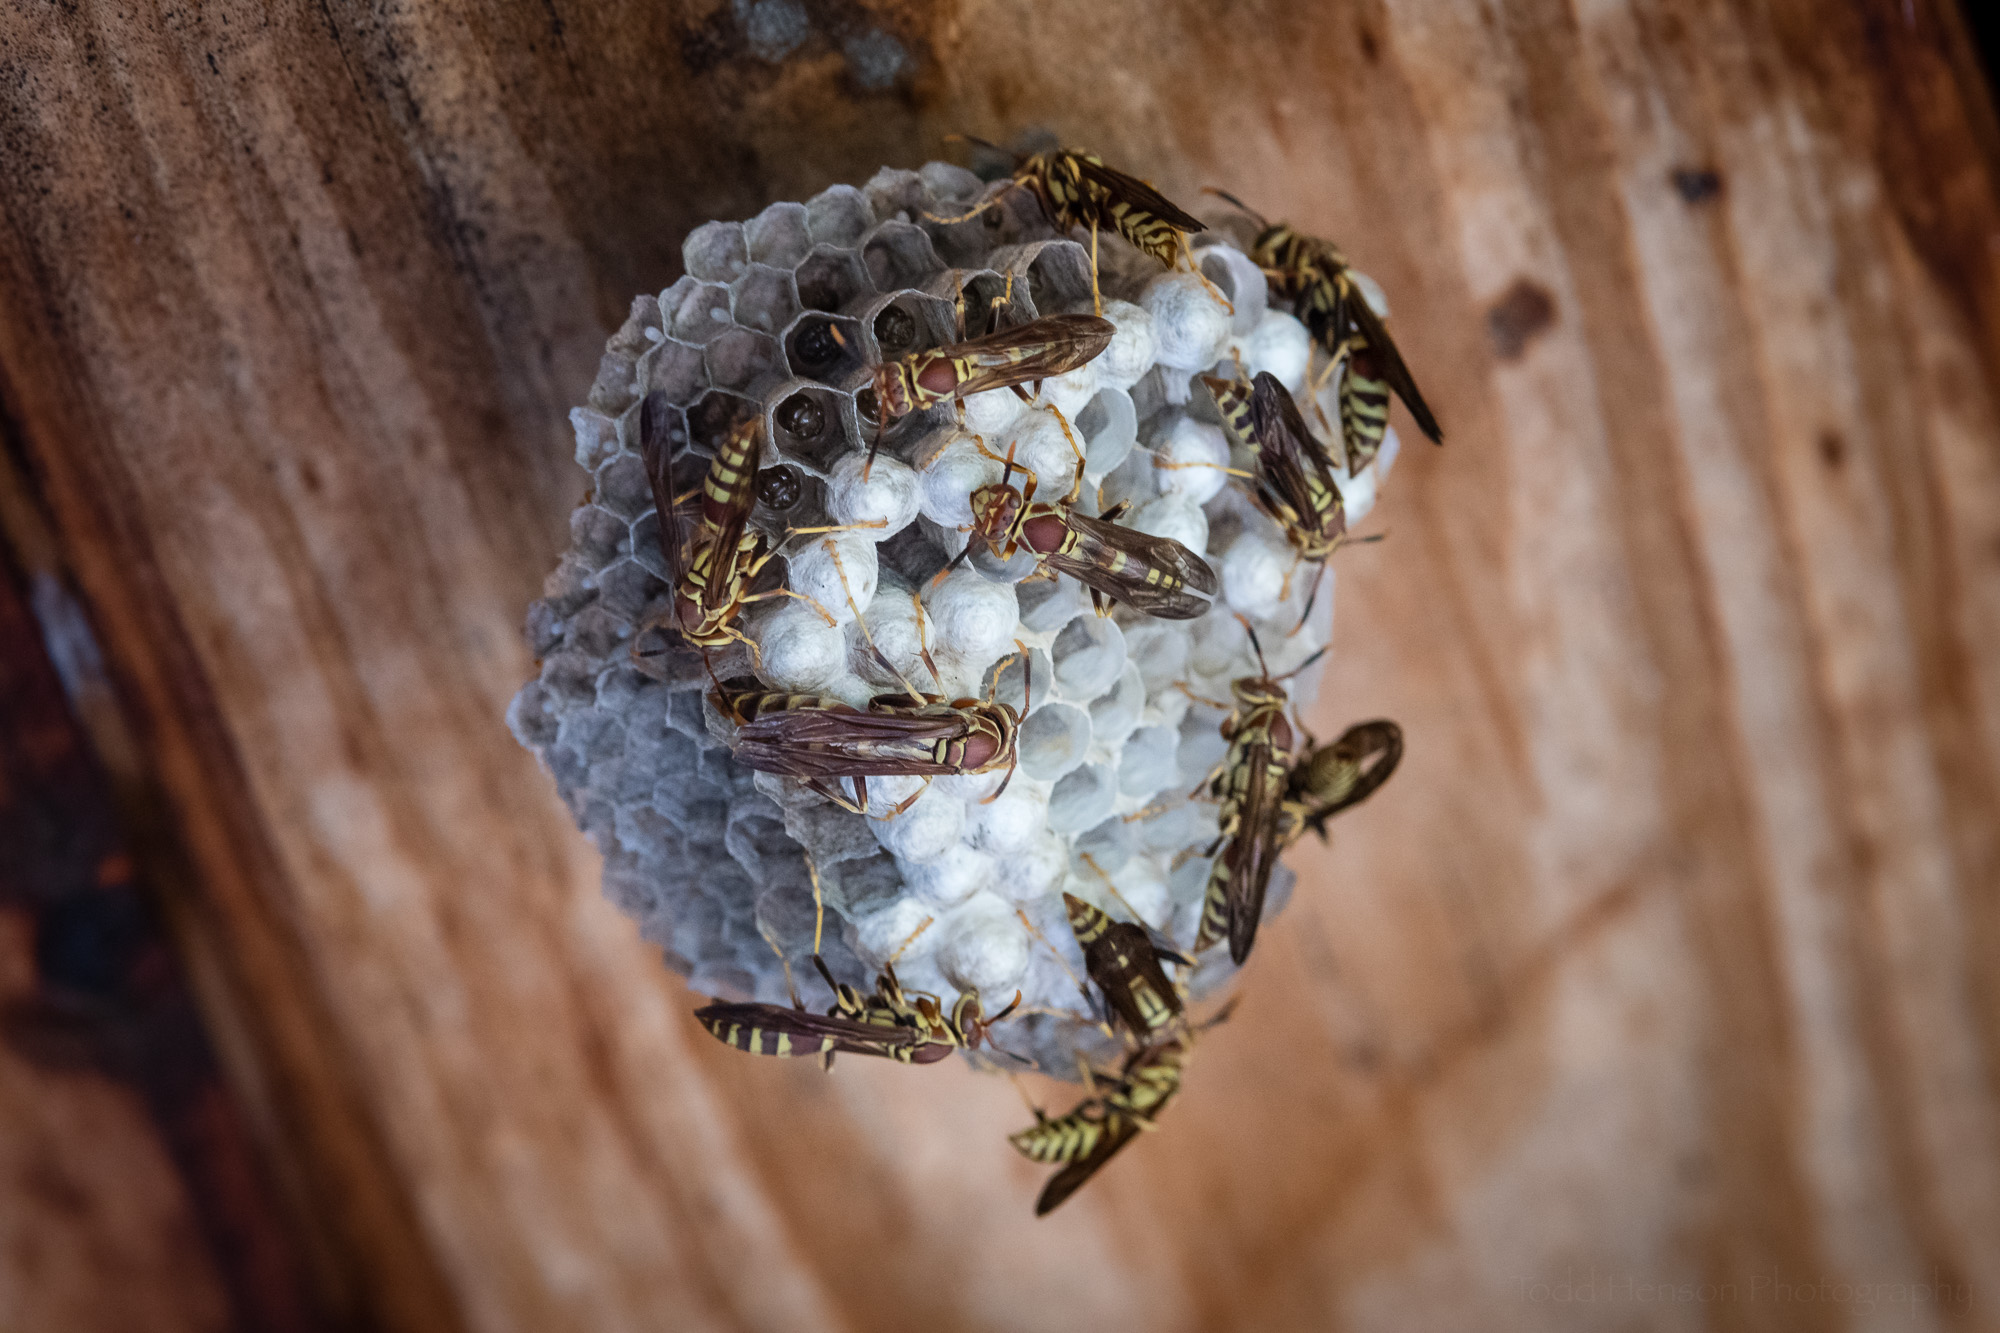 A small paper wasp nest, perhaps not as old as the others. All of these nests will be abandoned after their one and only use.